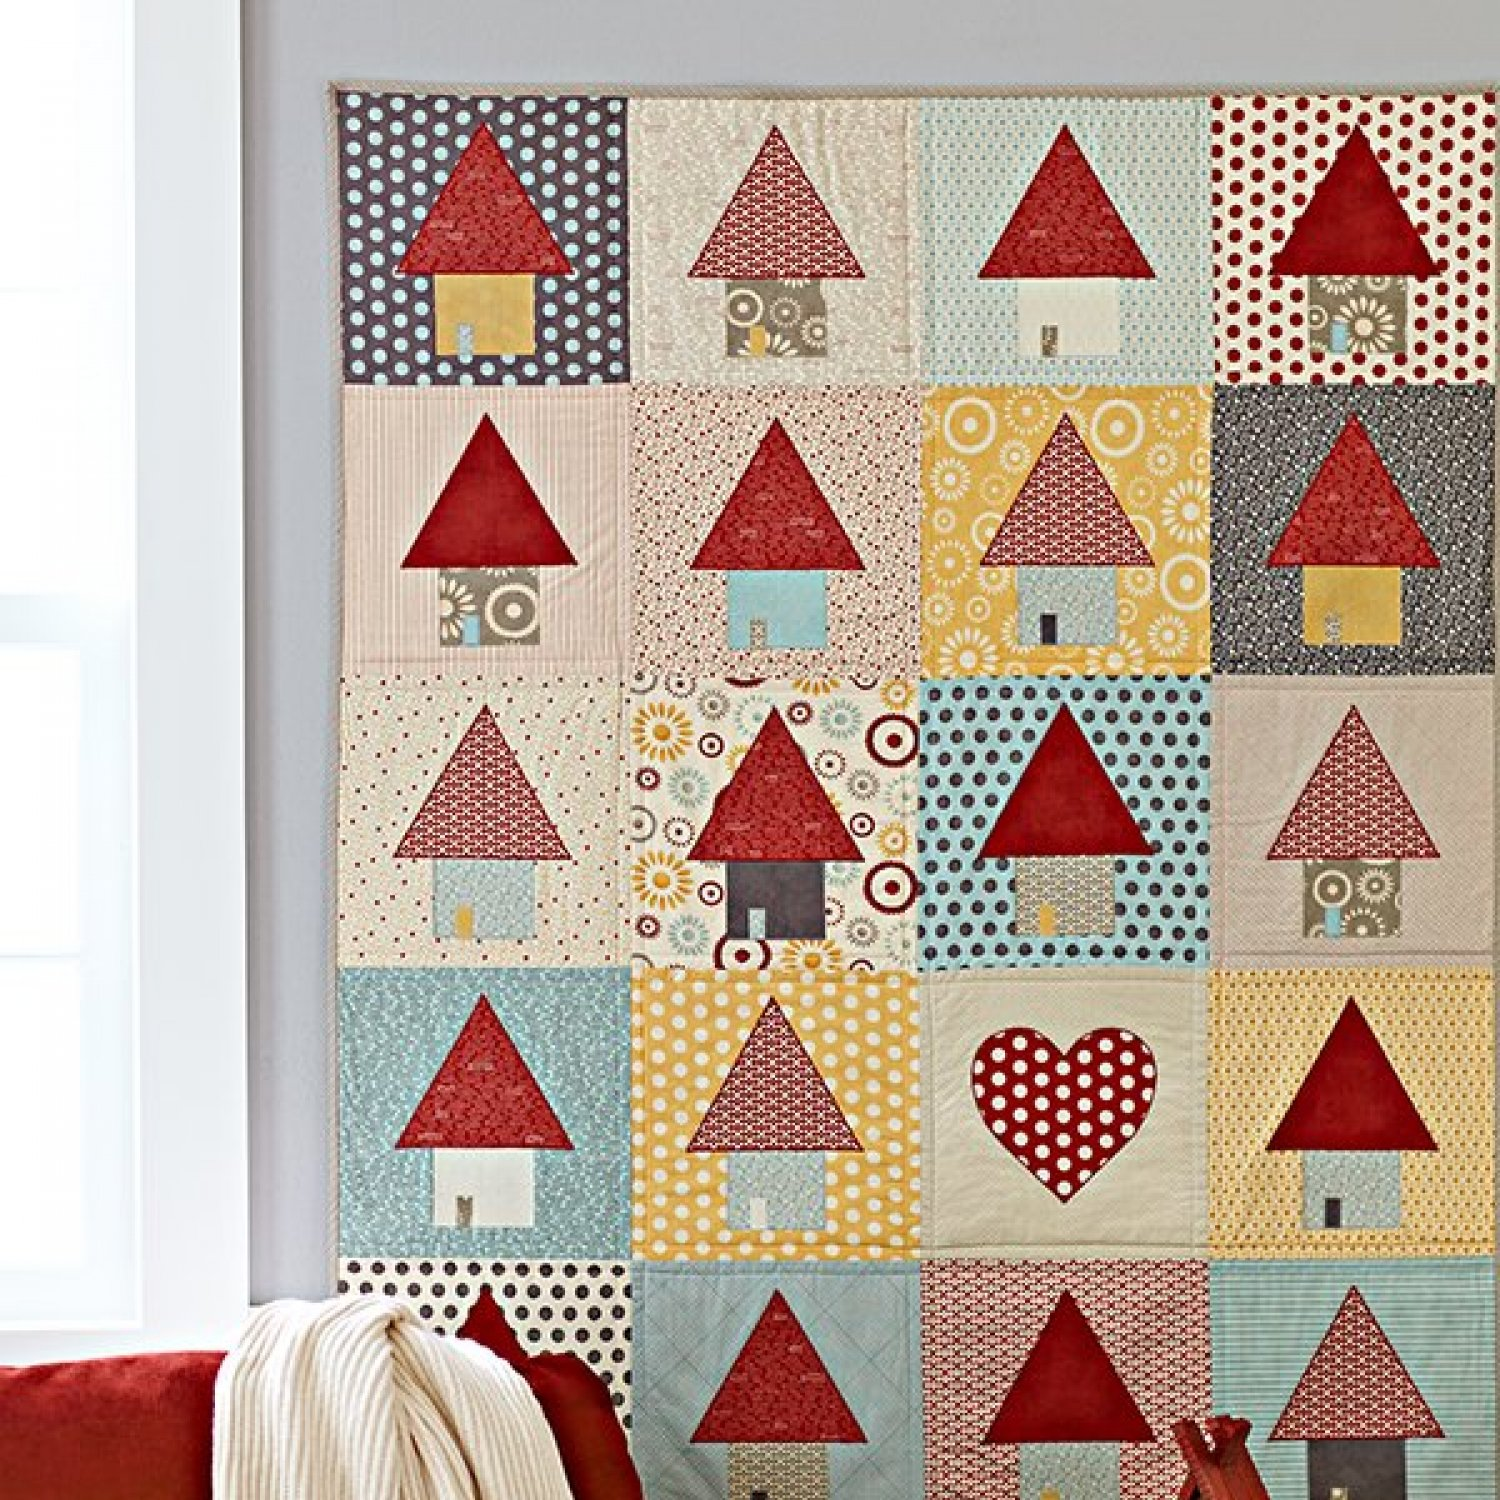 Applique Quilts With Appliqué Shapes Allpeoplequilt